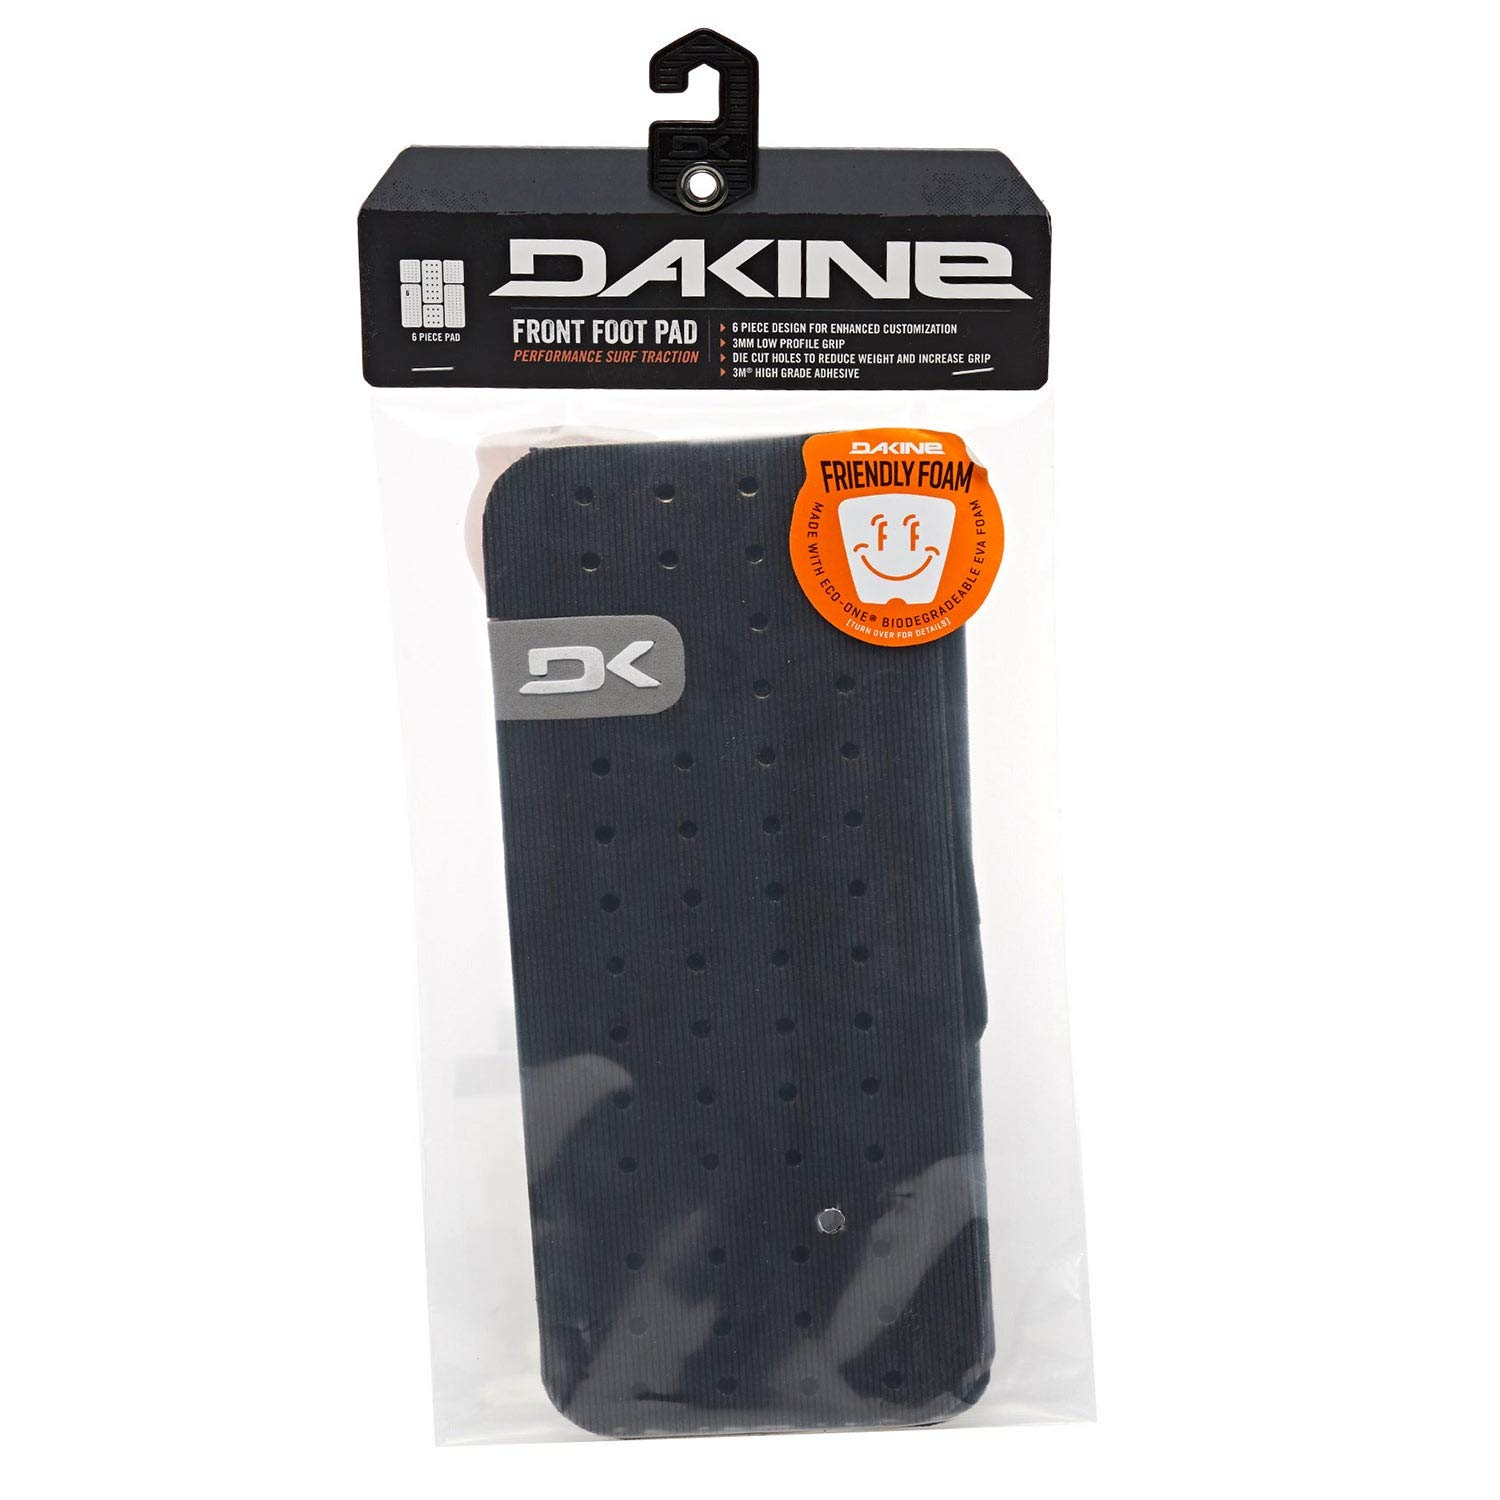 Dakine Front Foot Surf Traction Pad, Black, One Size by Dakine